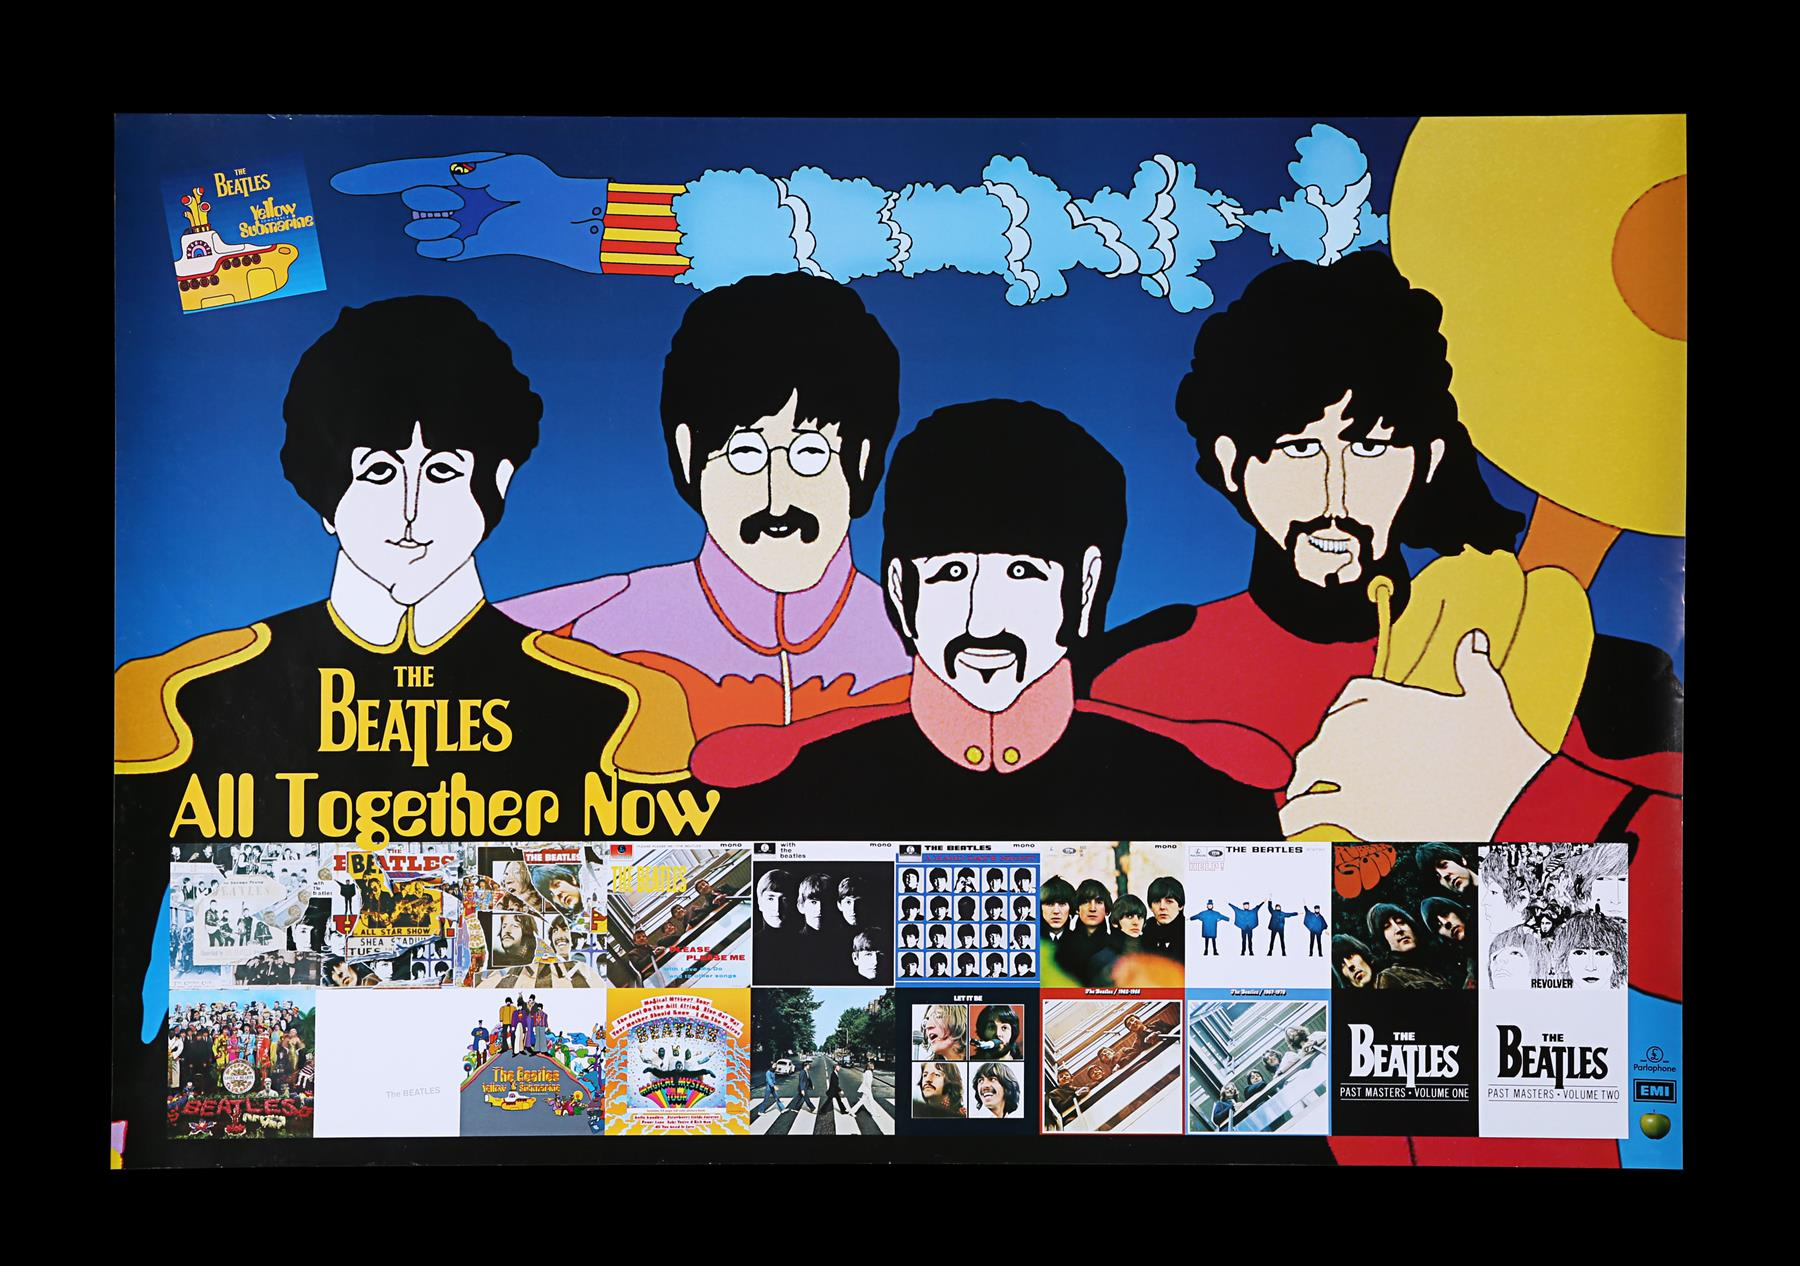 YELLOW SUBMARINE (1968) - Promotional and Marketing Items, 1999 - Image 3 of 9